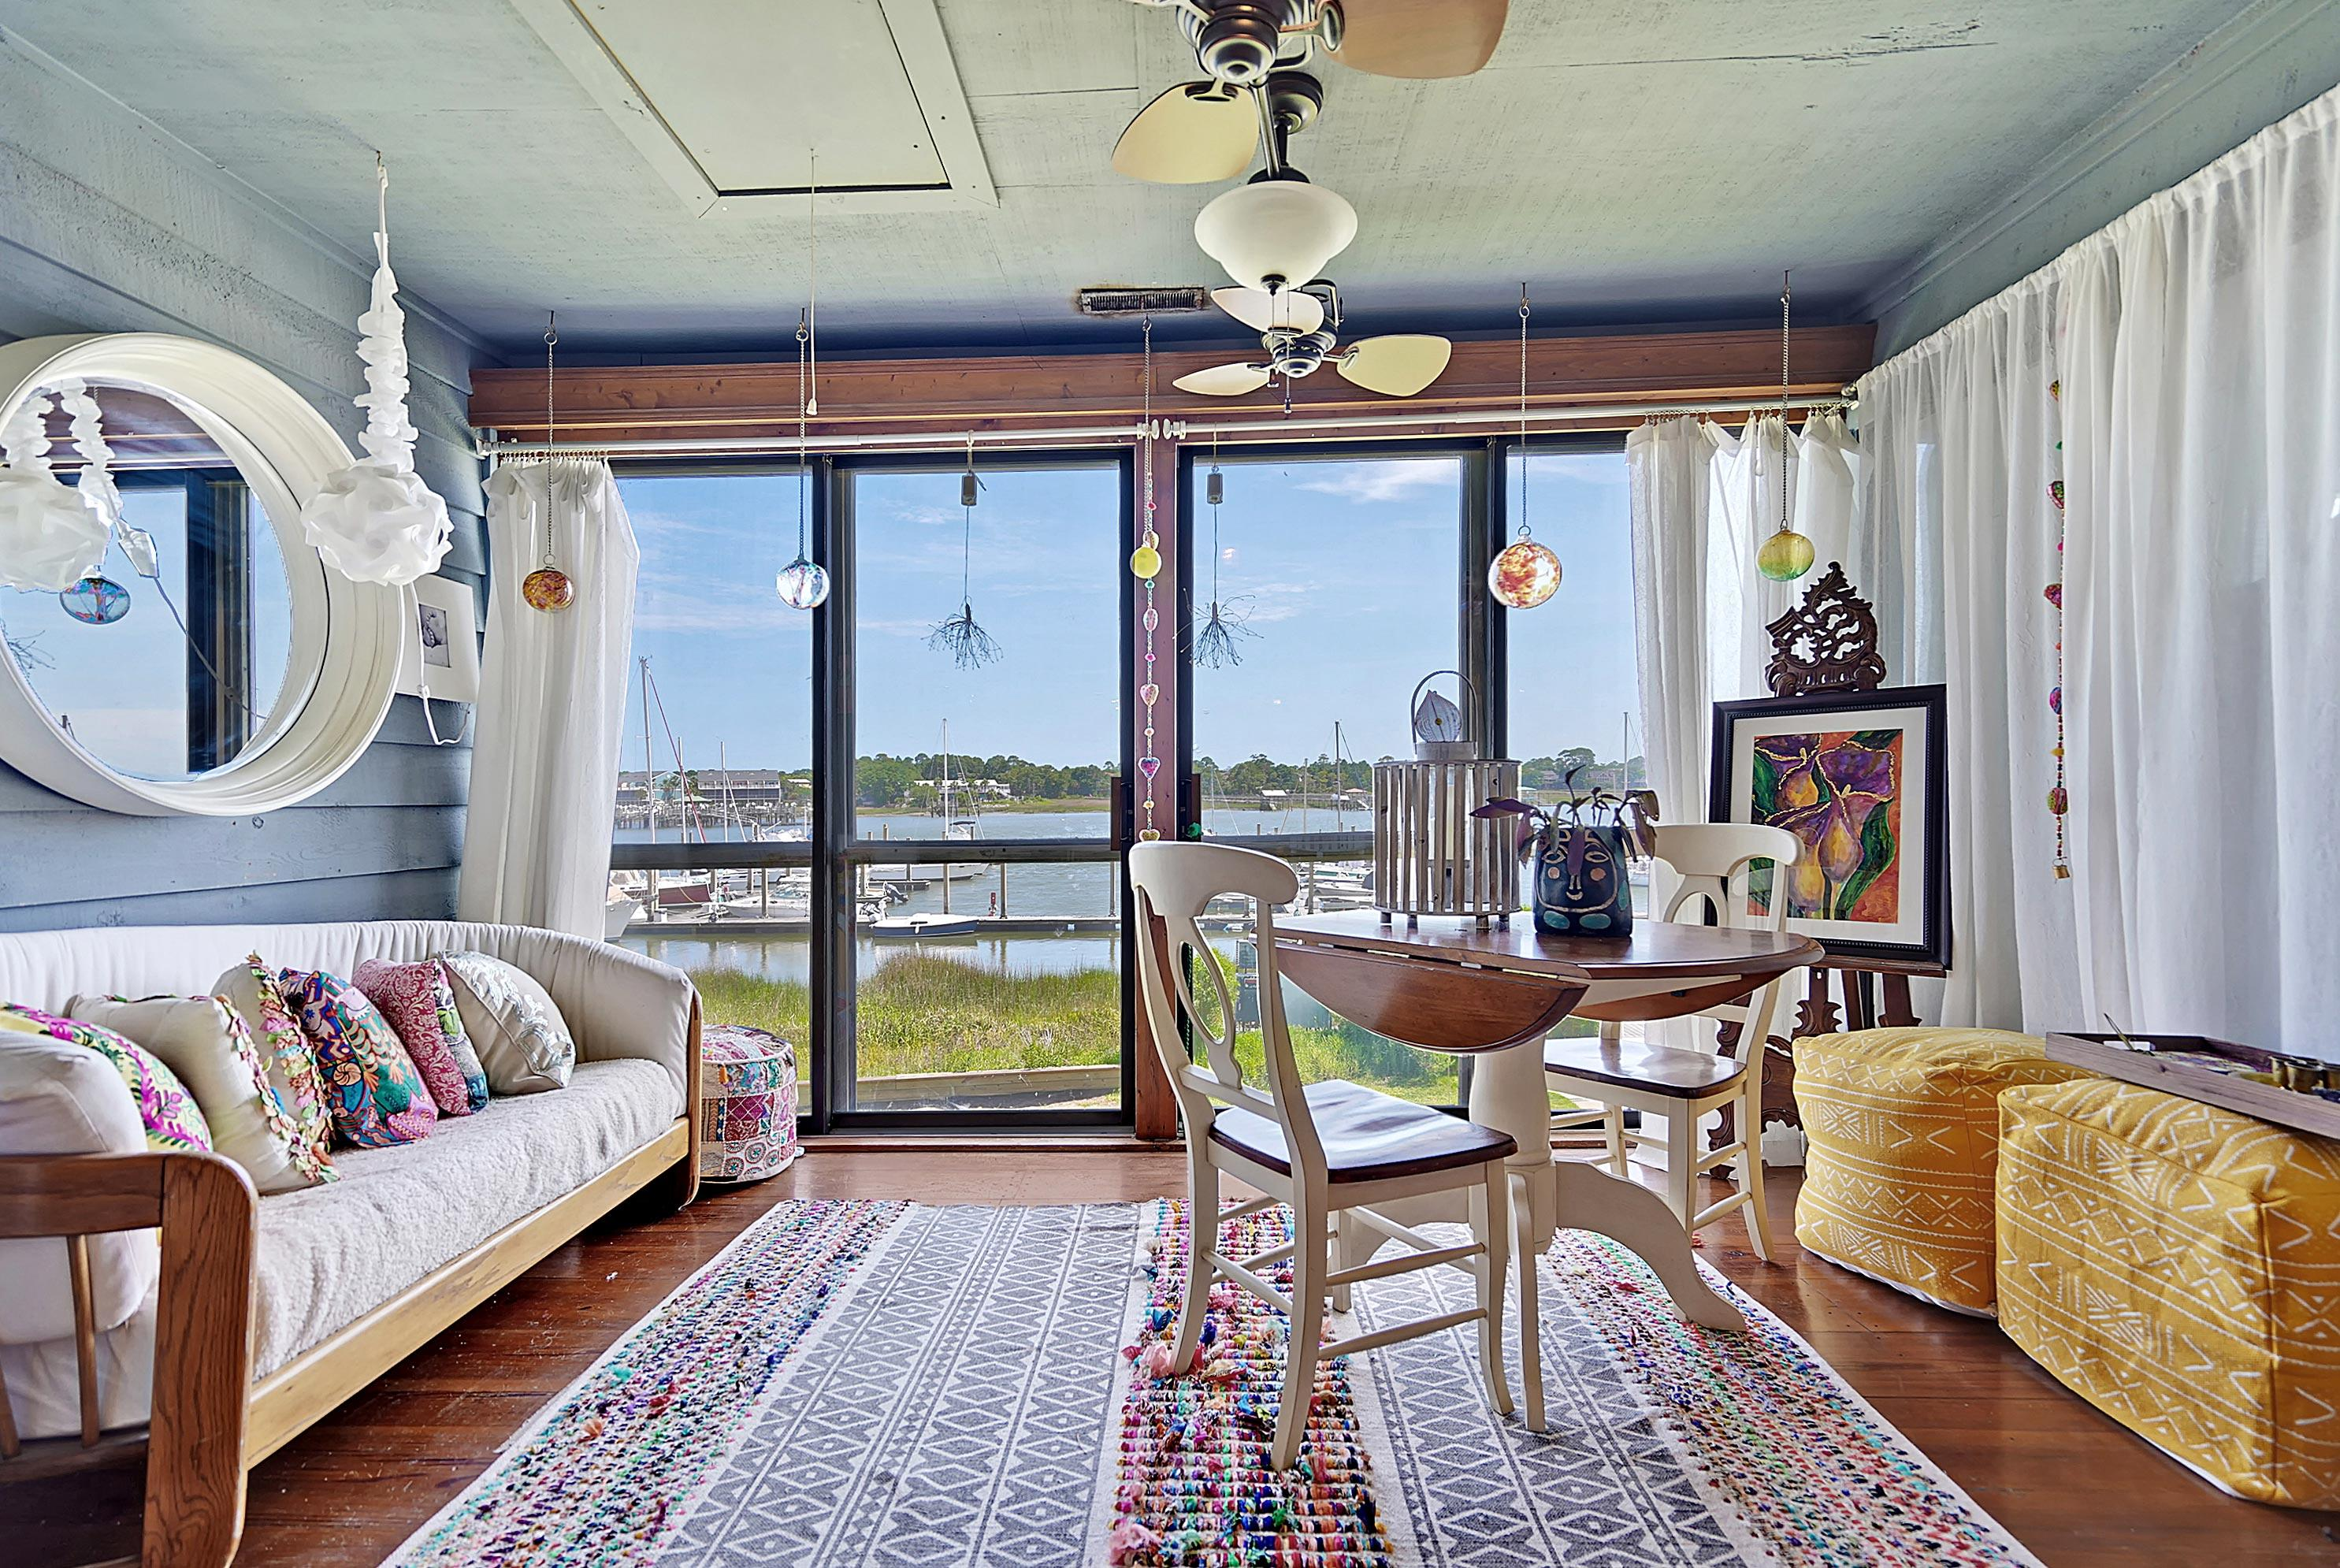 Mariners Cay Homes For Sale - 63 Mariners Cay, Folly Beach, SC - 1